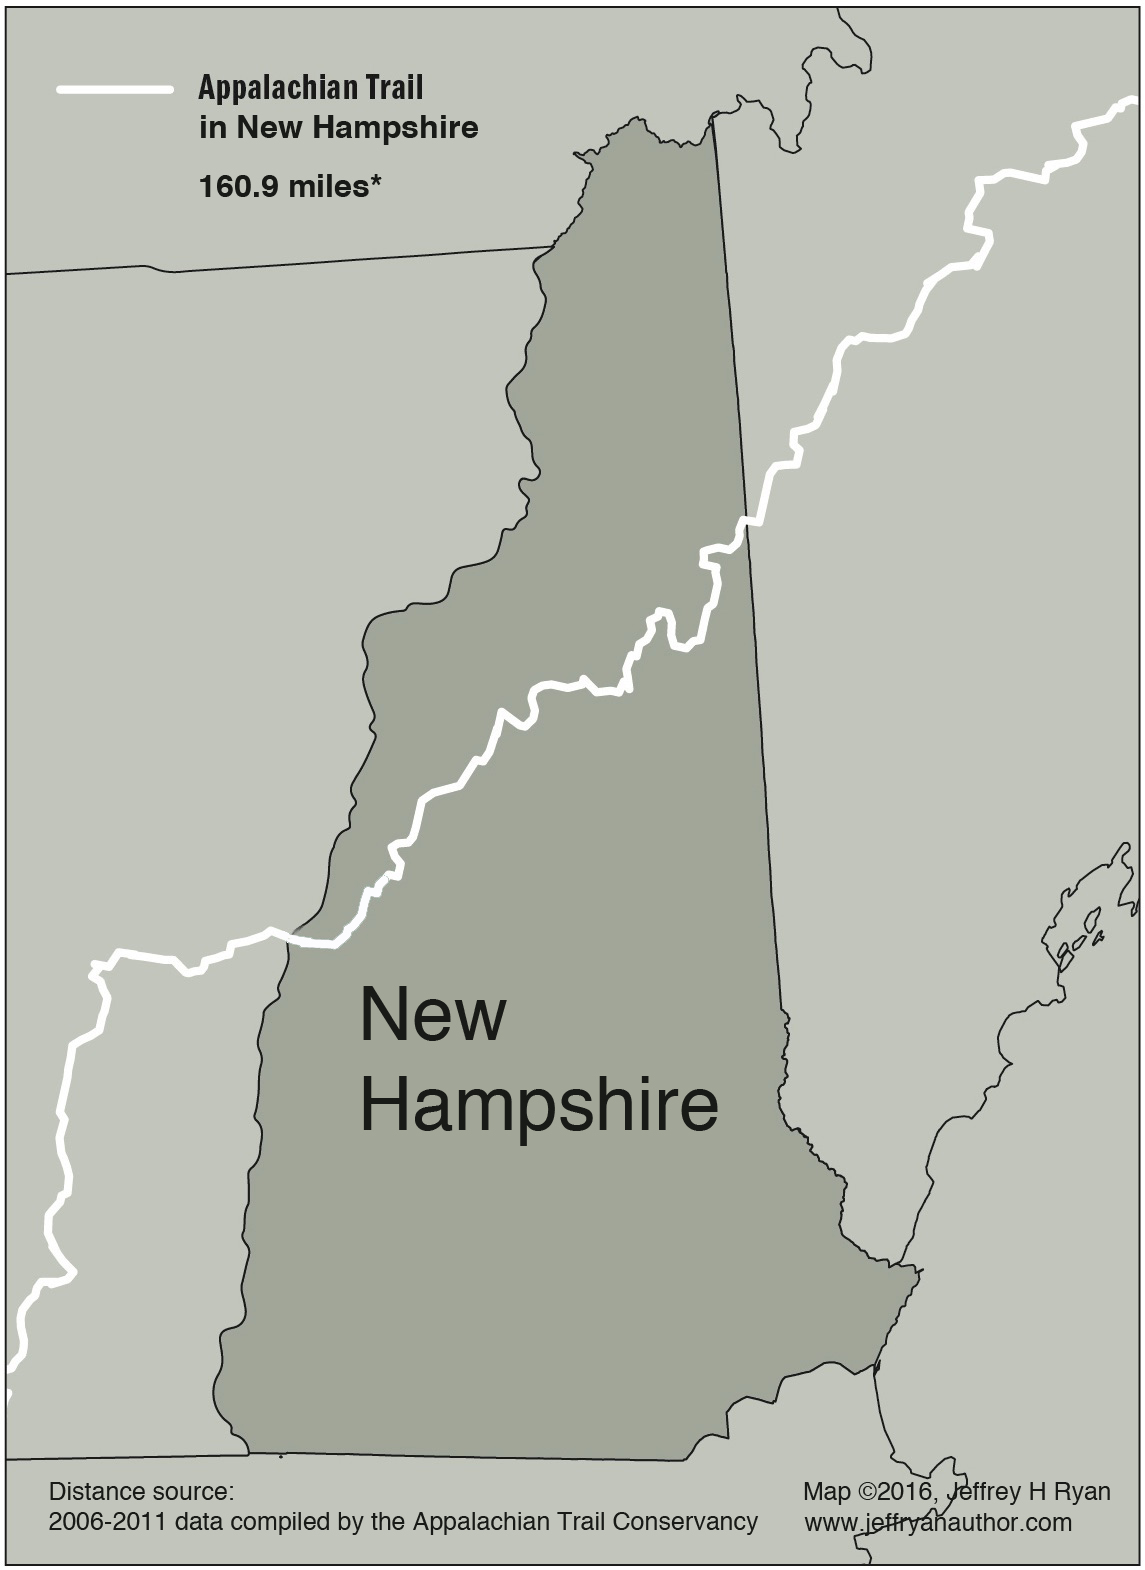 Map Of Appalachian Trail In New Hampshire Jeff Ryan Author Speaker - Appalachian trail new hampshire map